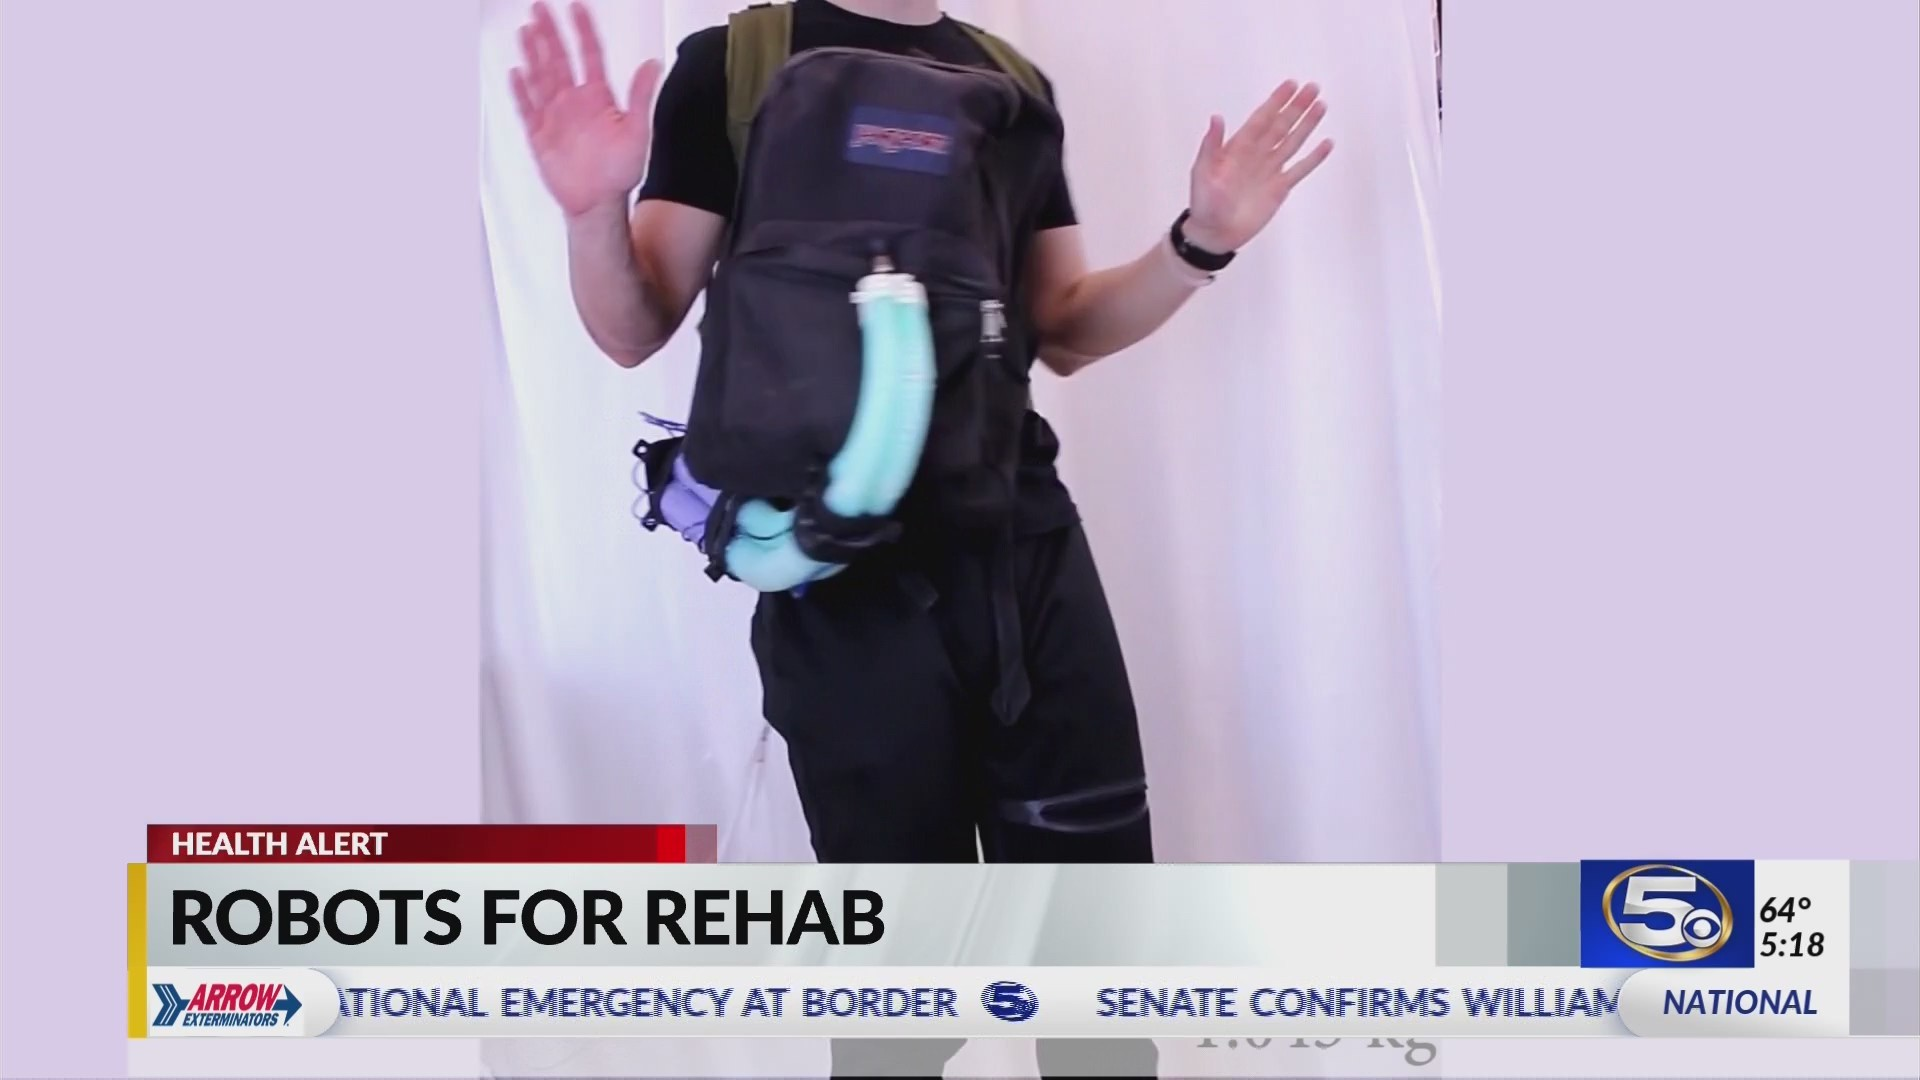 Robotic rehab could change the lives of stroke survivors